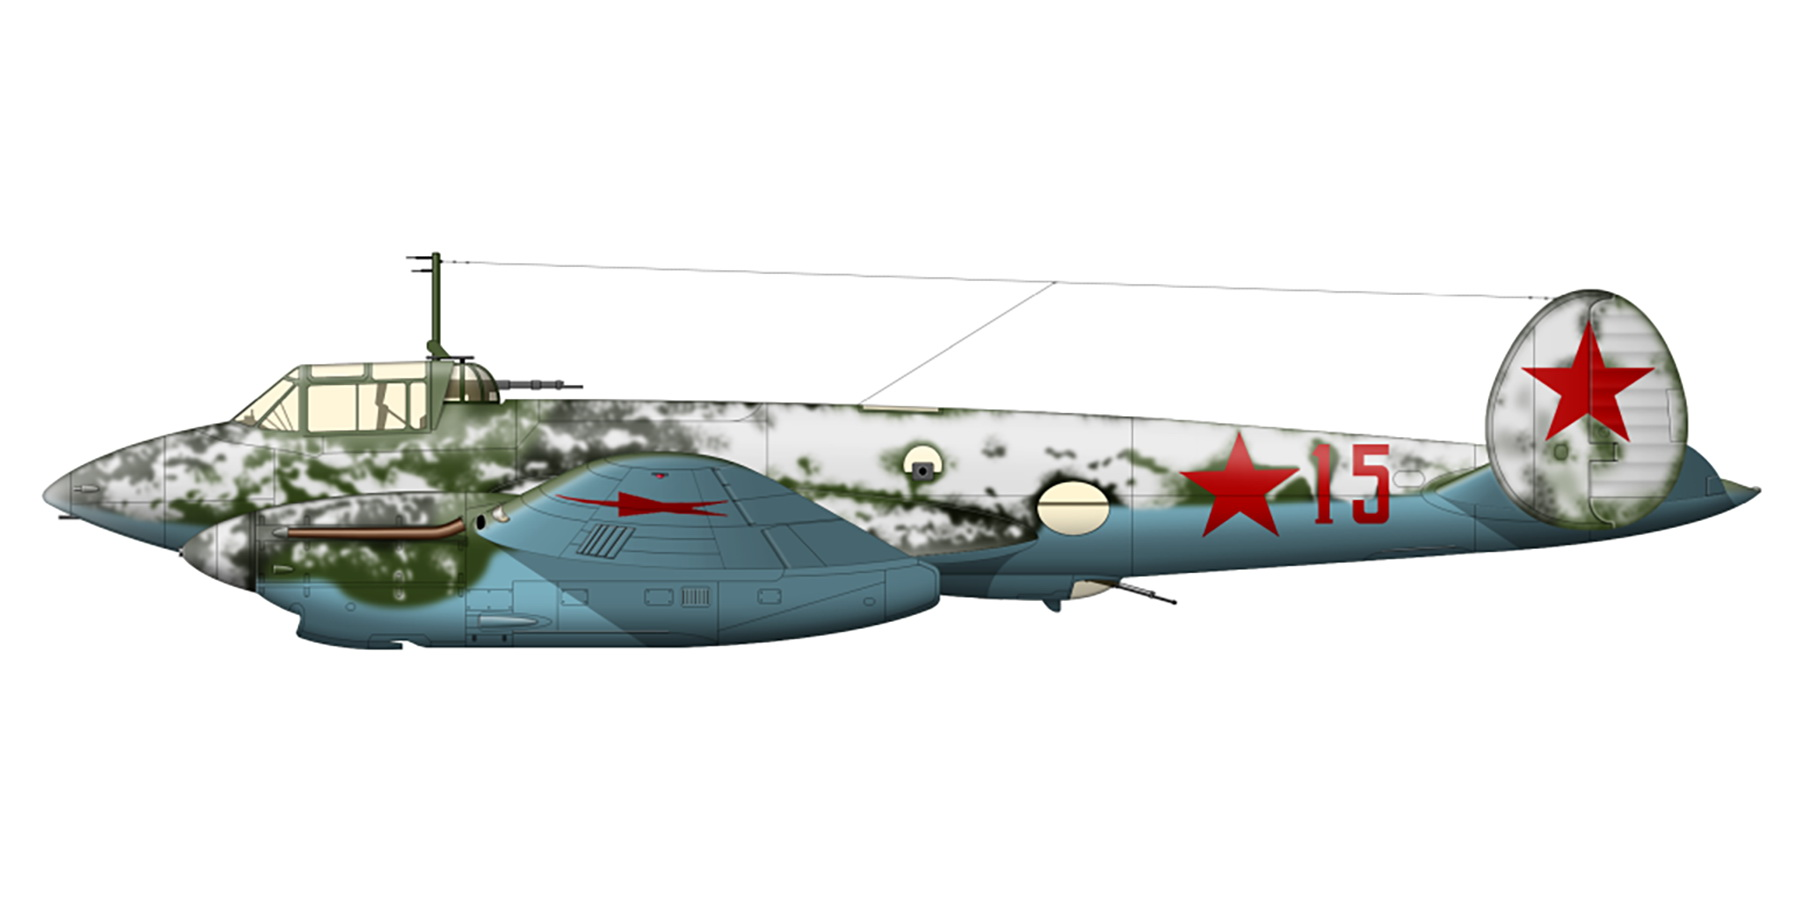 Petlyakov Pe 2 type 110 with 73PBAP Baltic Fleet Red 15 in winter camouflage 1942 0A